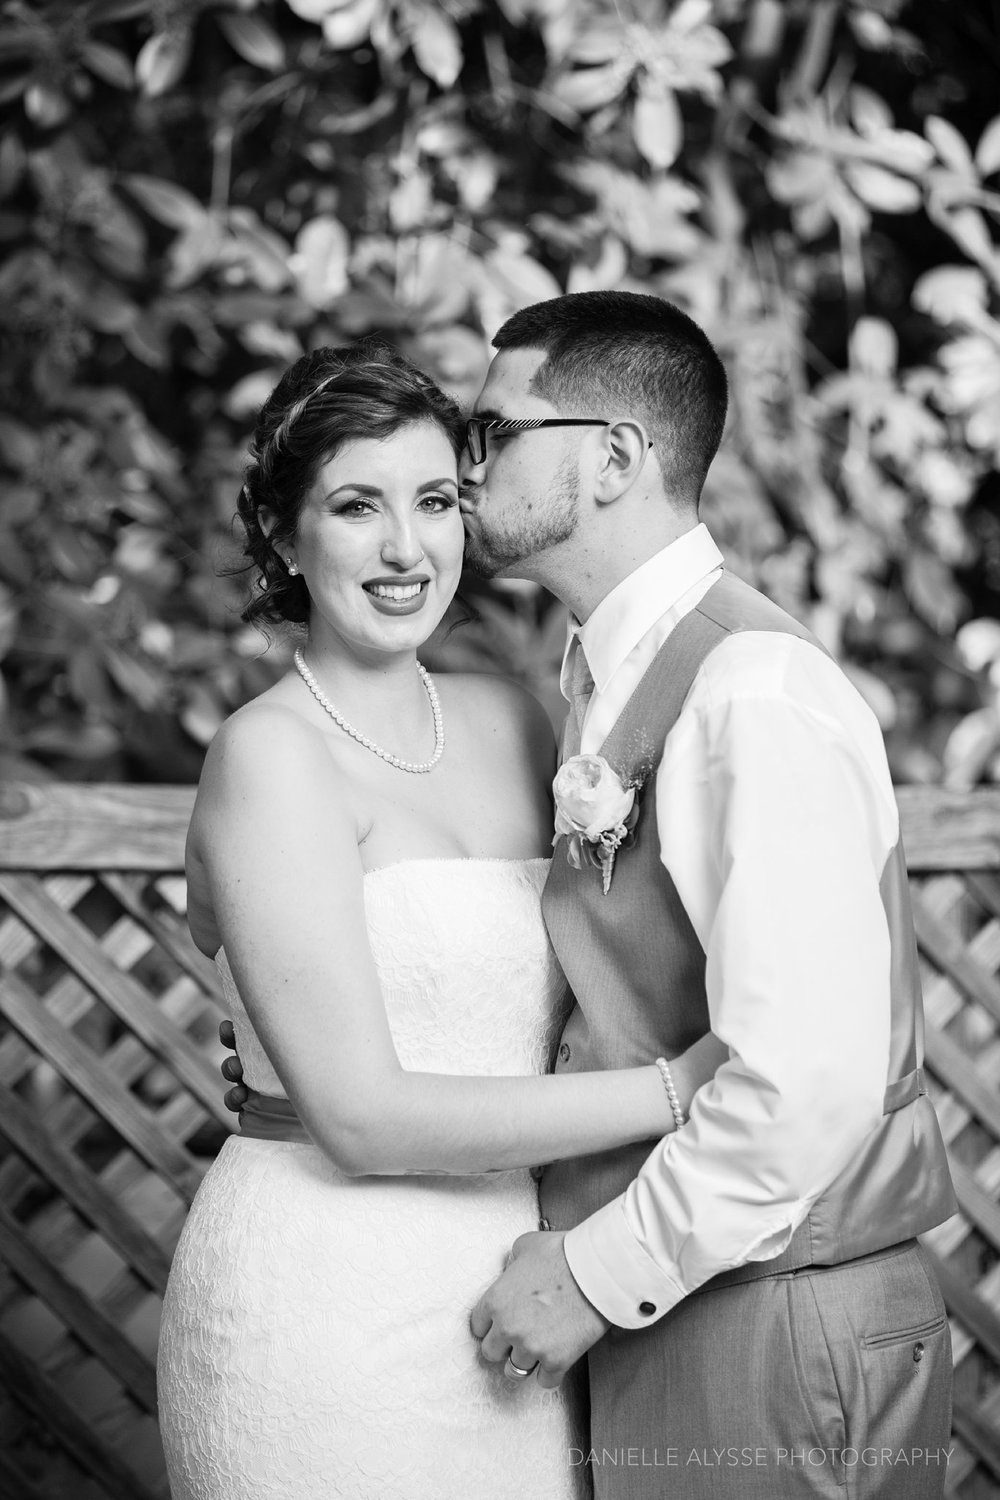 170507_blog_megan_david_wedding_loomis_flower_farm_inn_danielle_alysse_photography_sacramento_photographer0402_WEB.jpg